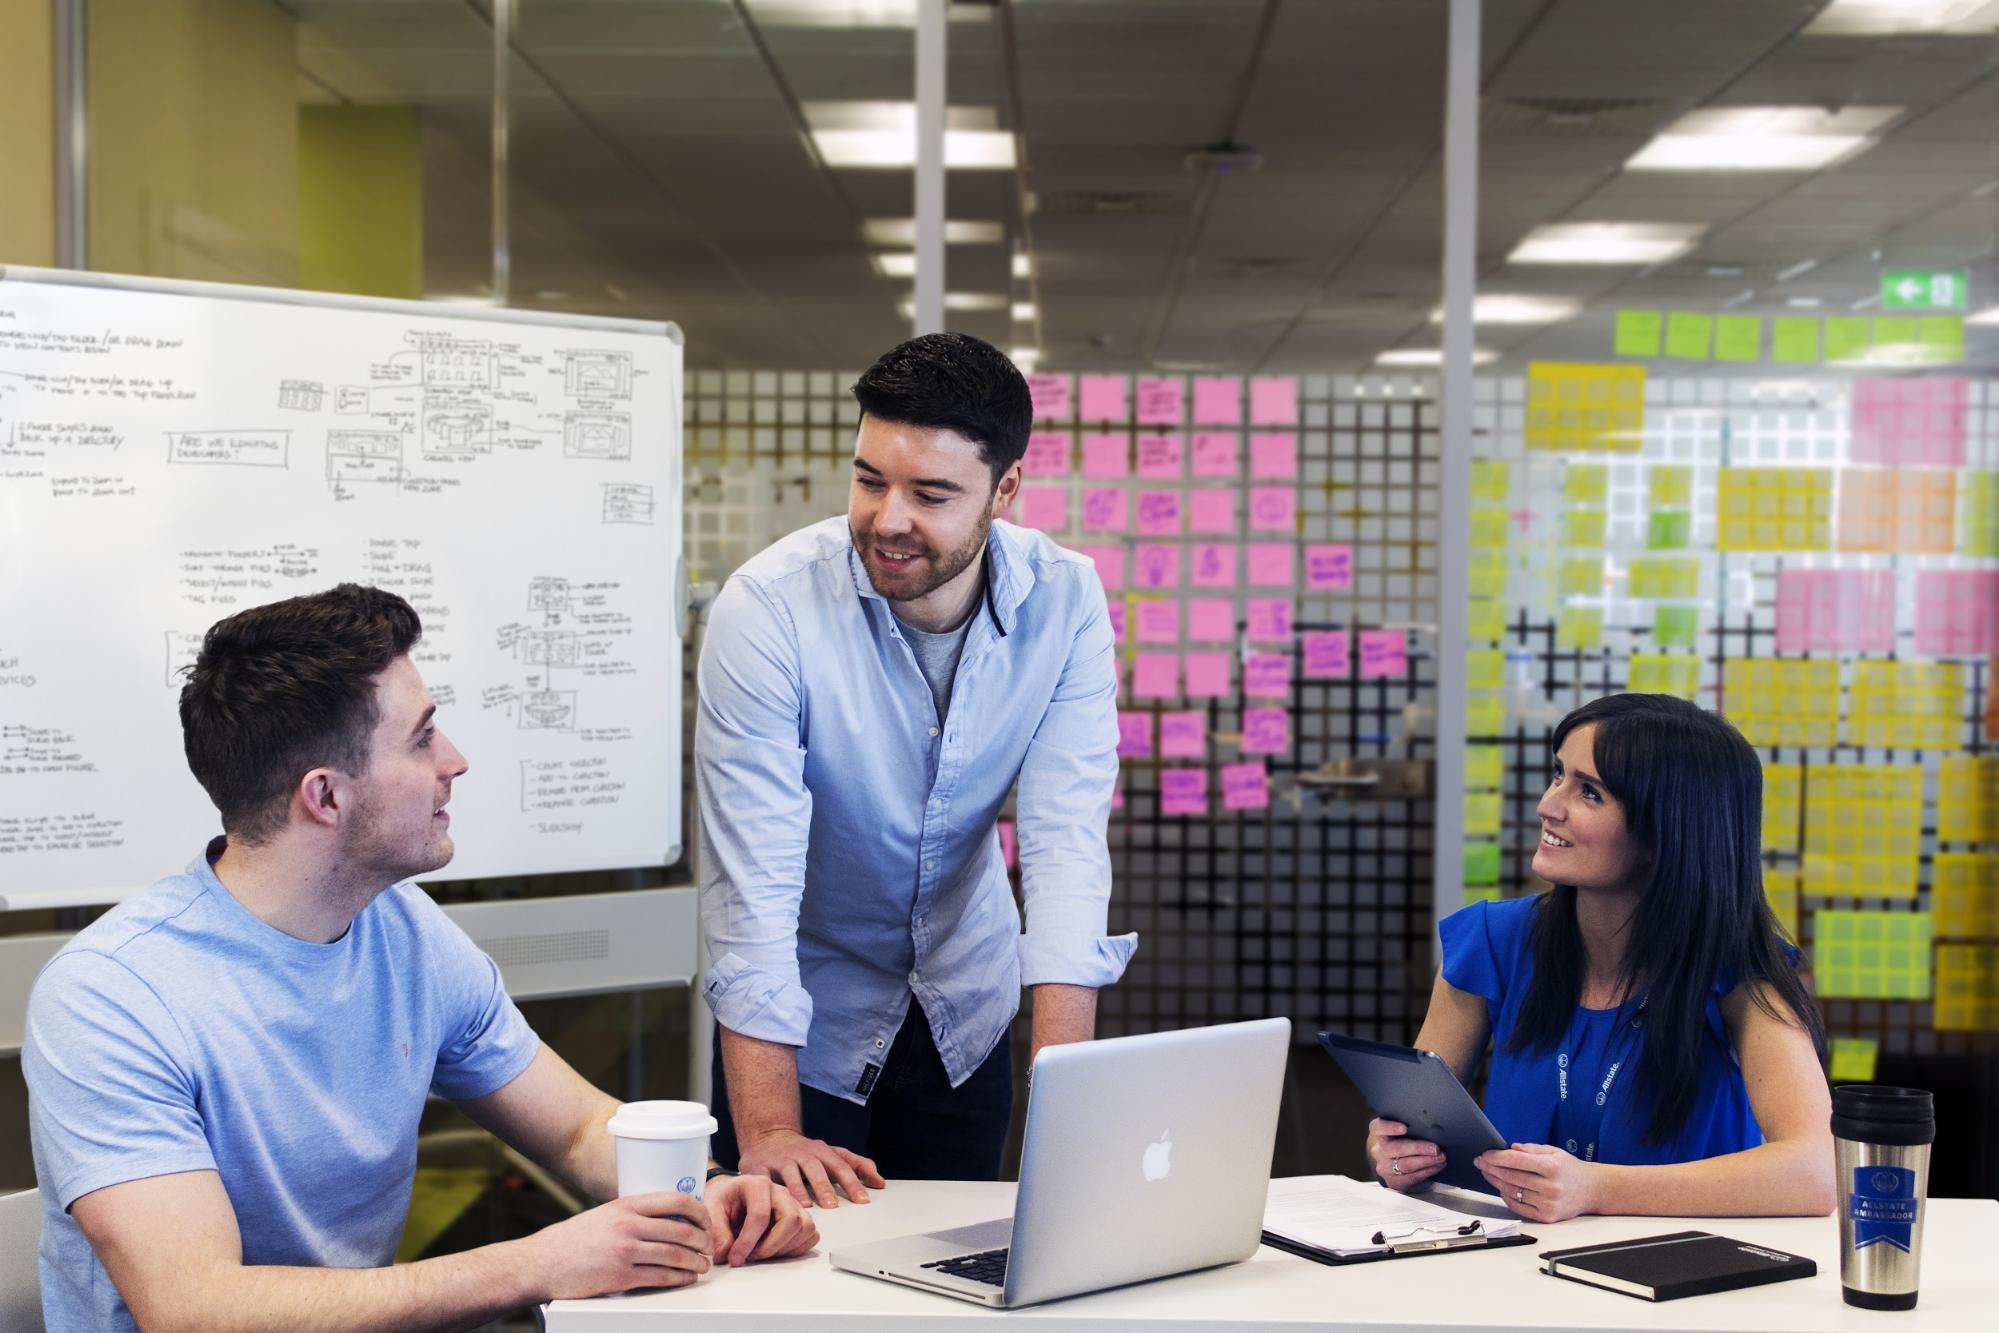 Allstate replaced meetings with slimmed down, action-oriented collaboration sessions.